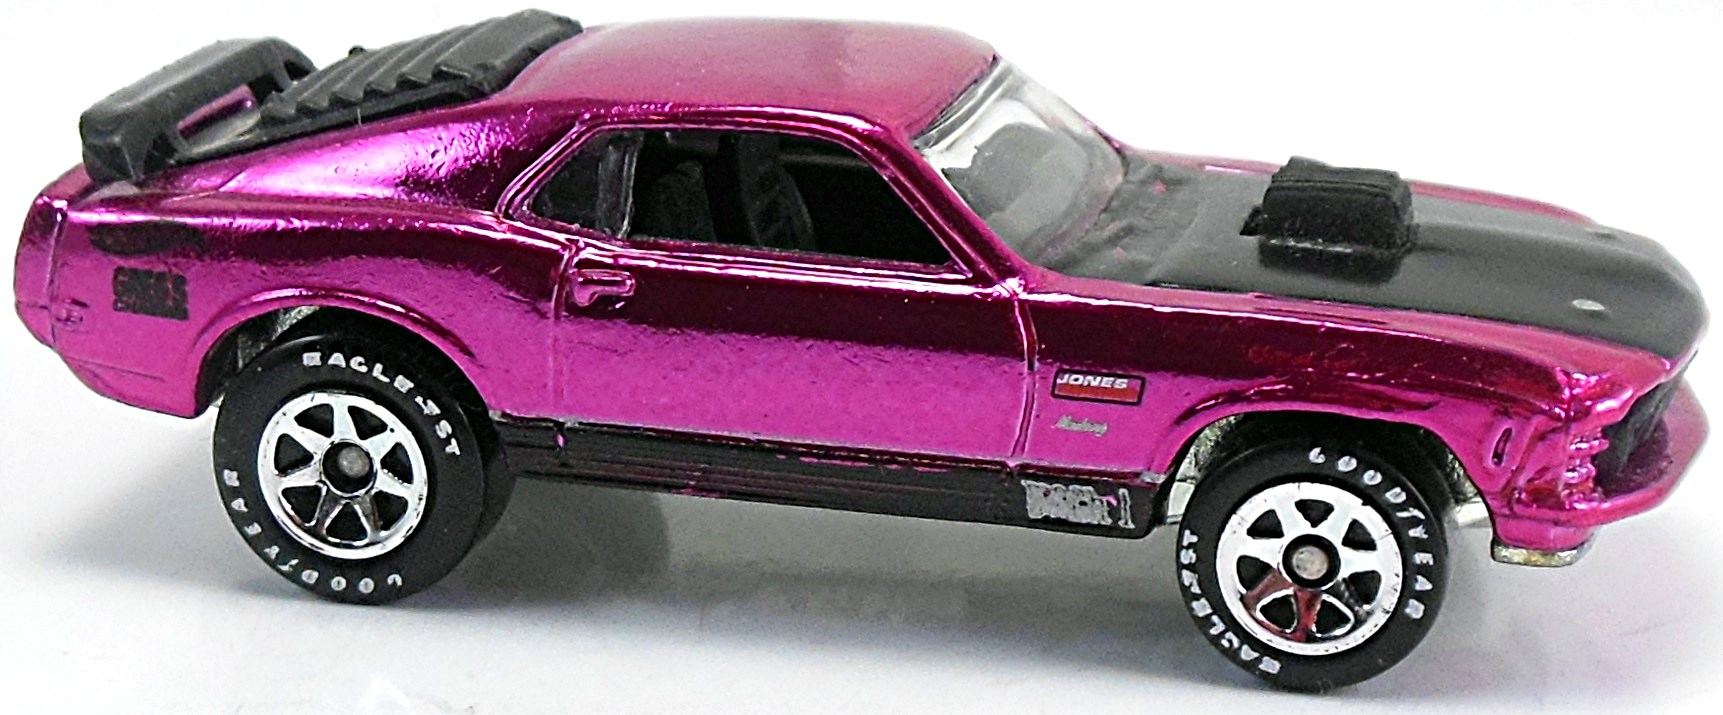 Red Black And Silver Stripes Mustang Mach  Hot Wheels Logo Gregs Chassis And Jones On Sides Spgyt Th Classics Series